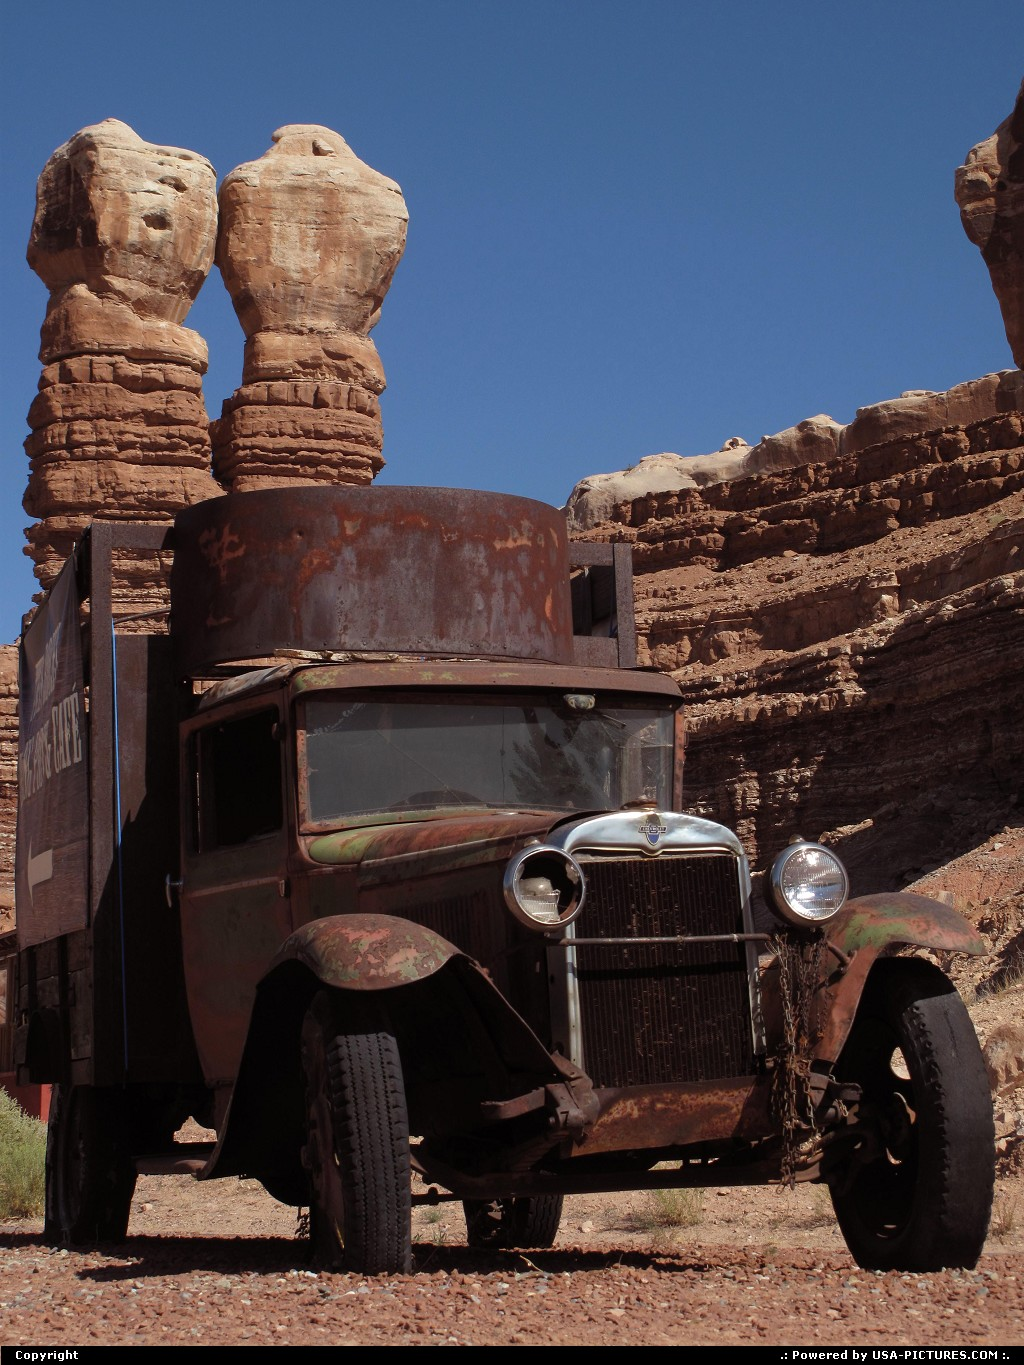 Picture by Parmeland: Bluff Utah   OLD CAR